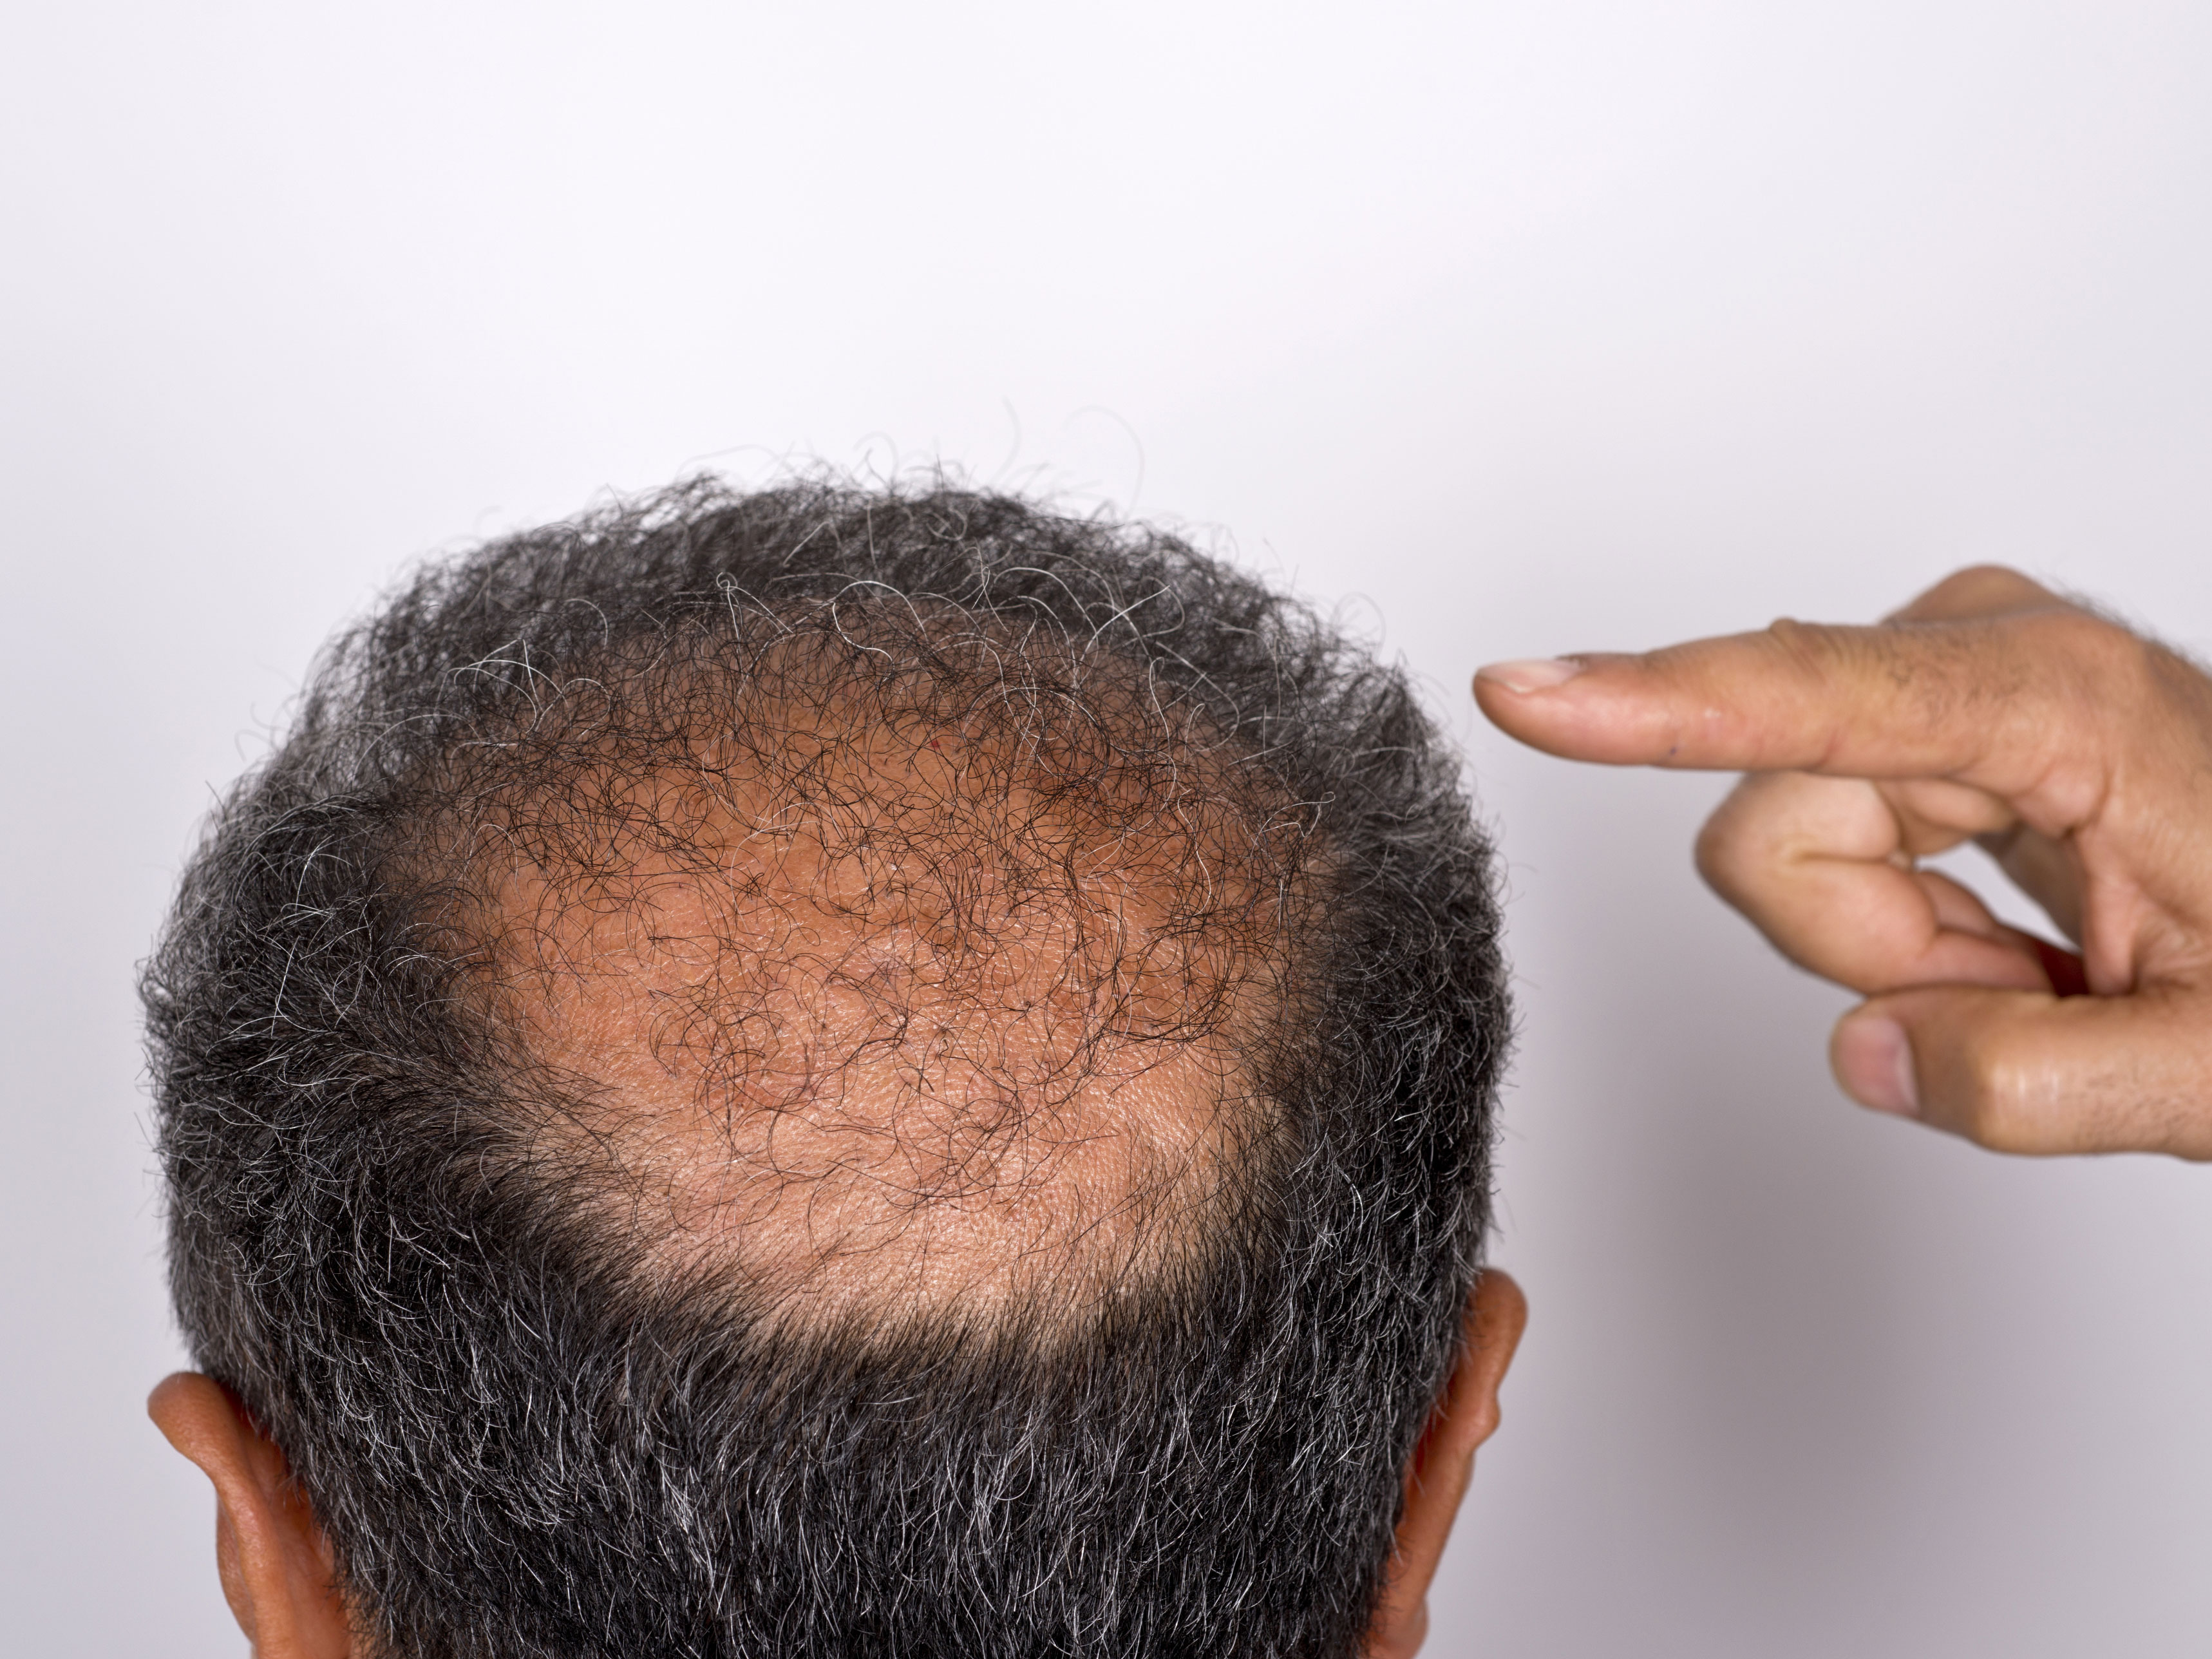 The Bald Spots That Are Linked To Cancer Easy Health